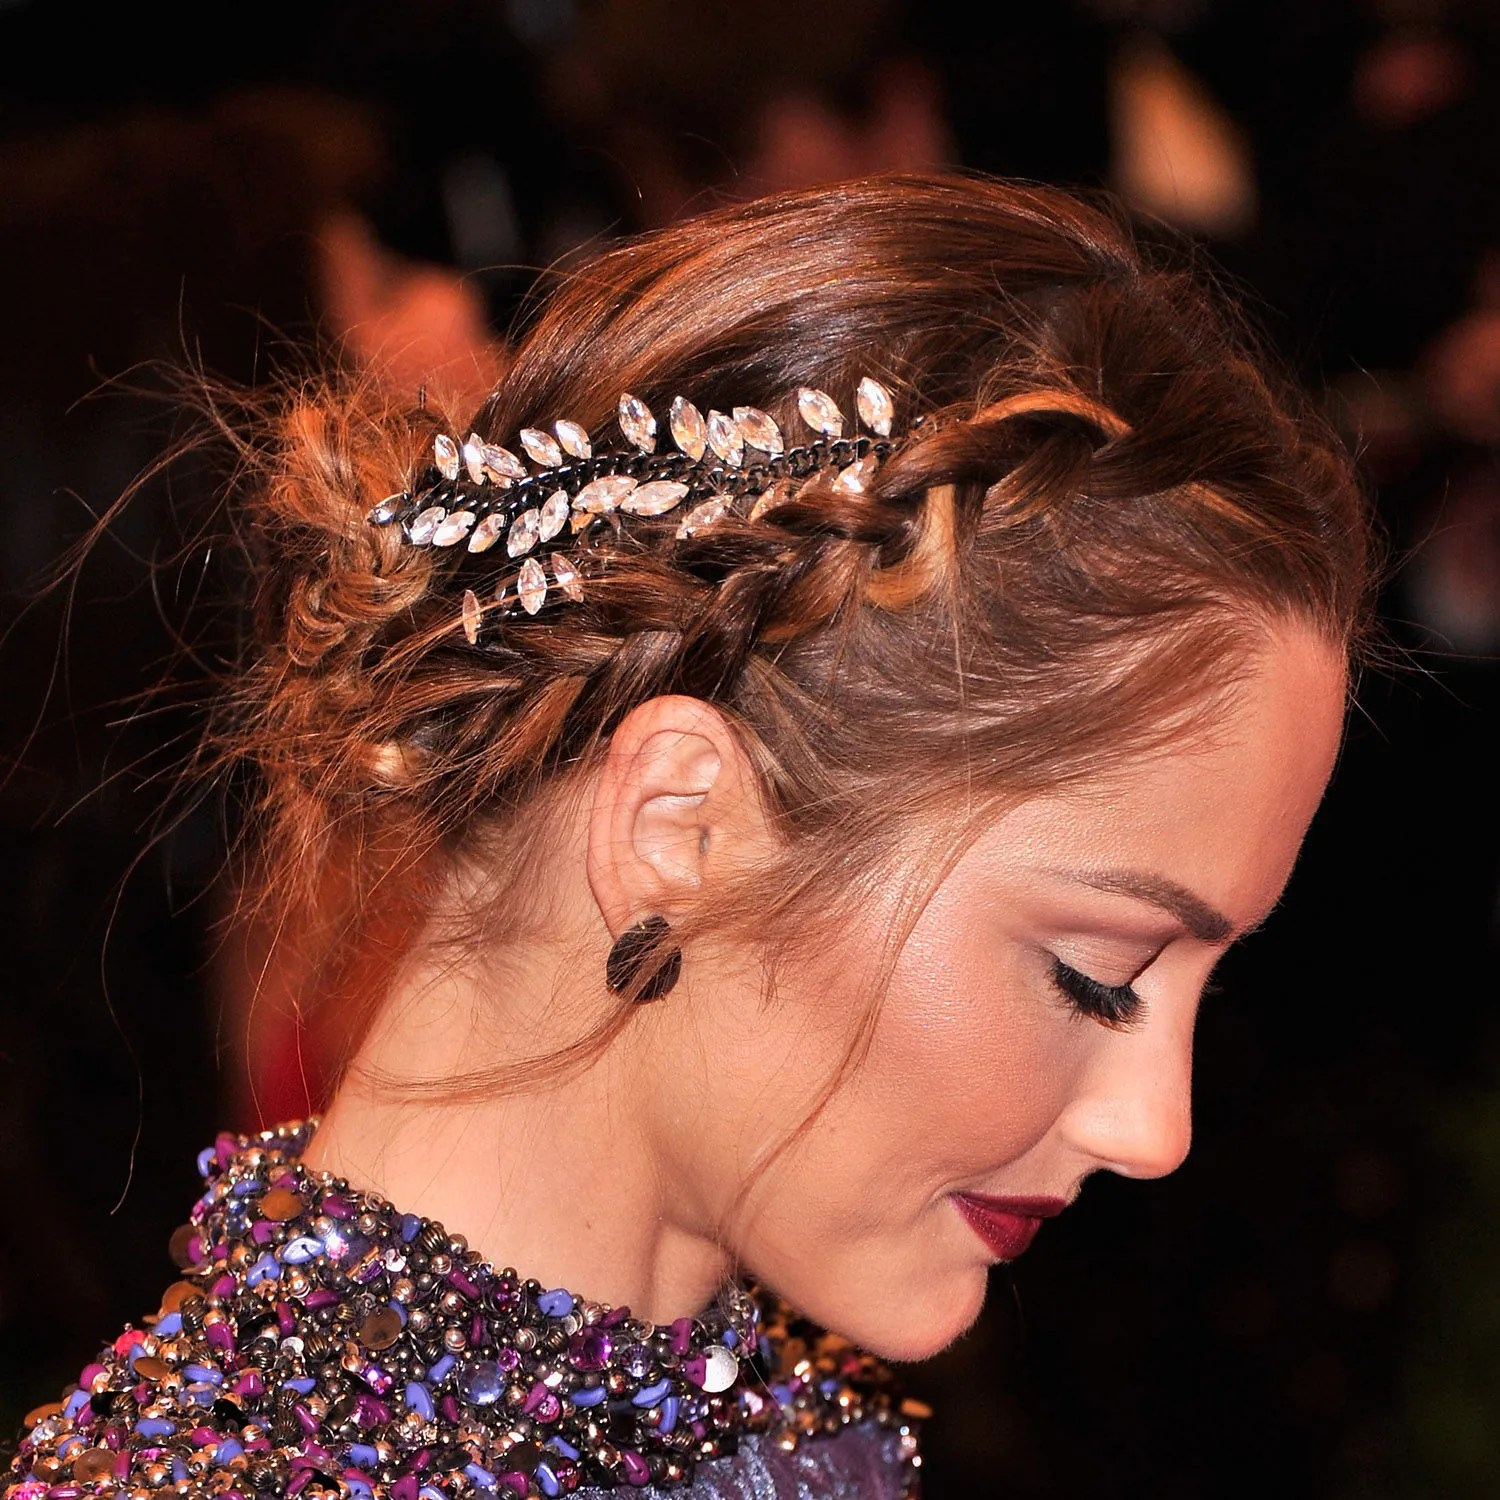 The 5 Most Awesome Hair Makeup And Nail Looks Of The